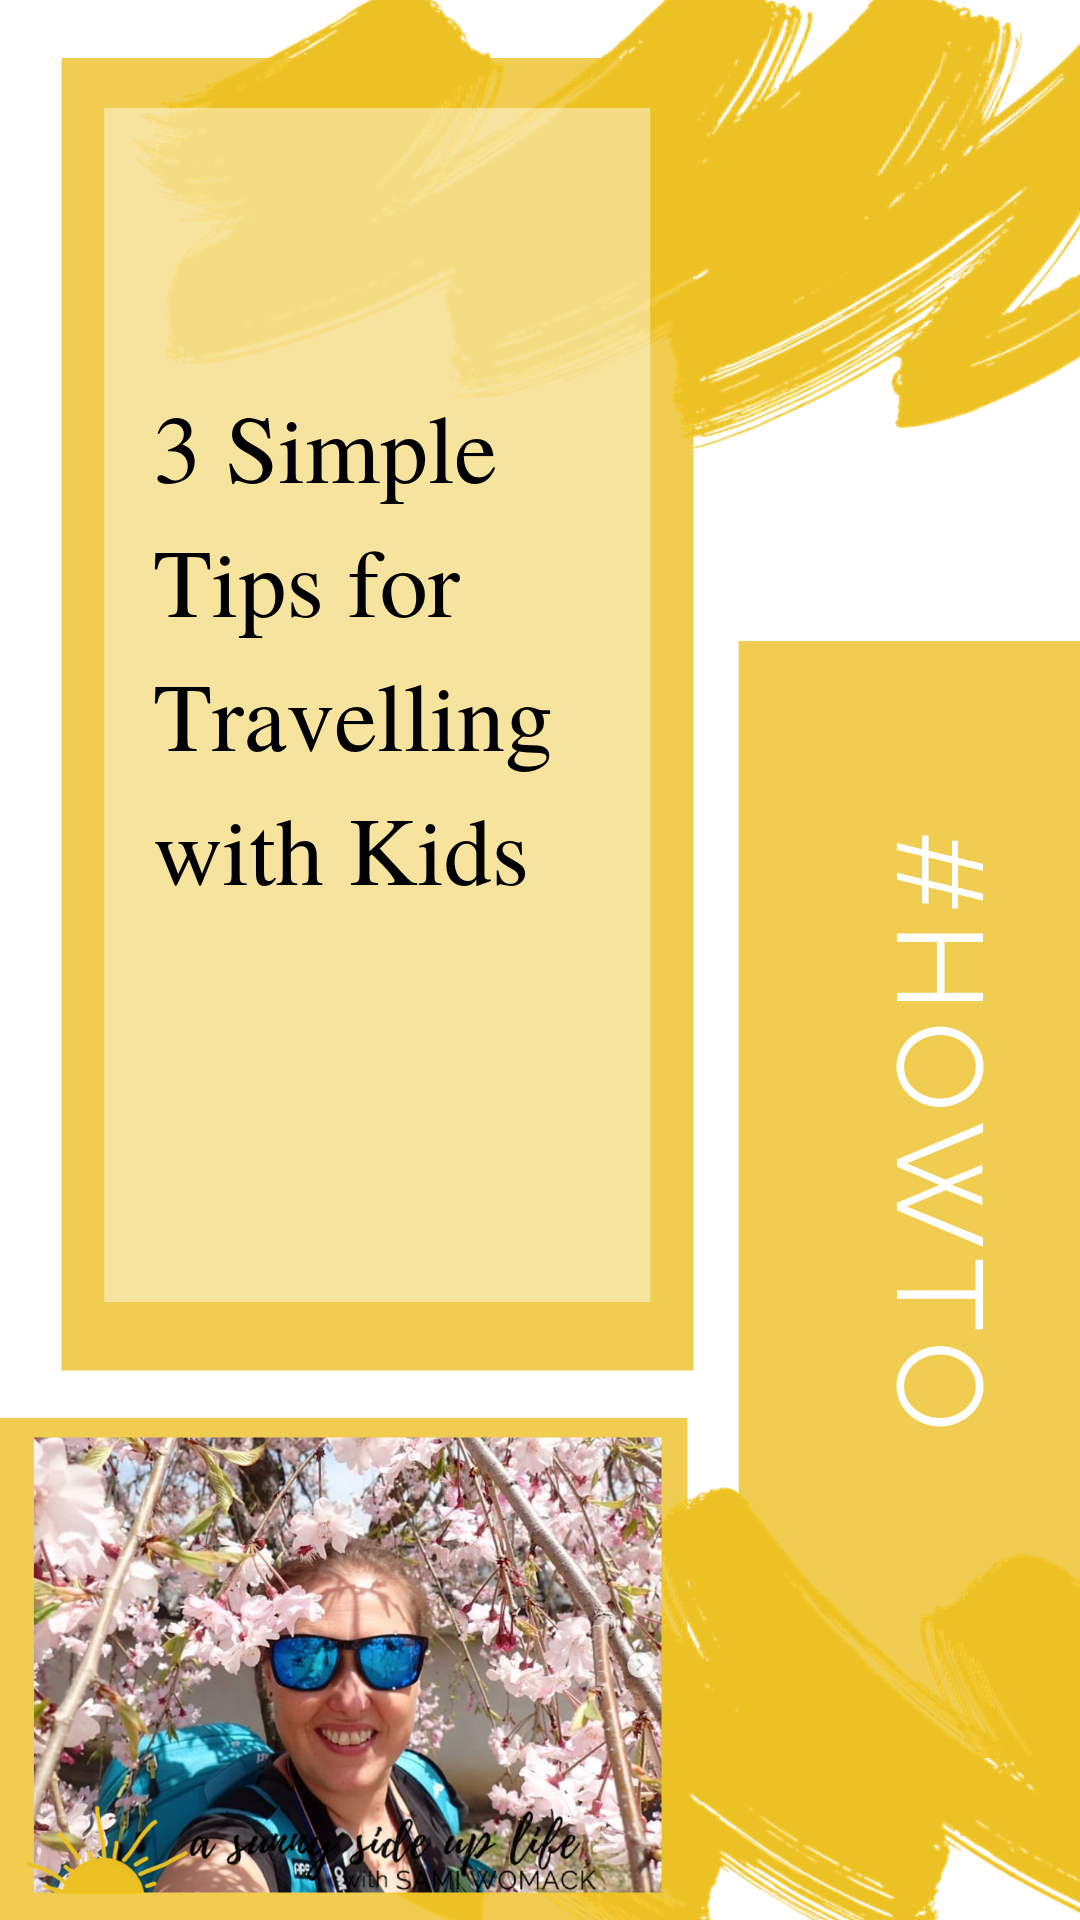 simple tips for traveling with kids | debt free travel | frugal travel | holiday | travelling | children | family | small kids | little children | babies | budgeting | how to | tip for | easy | Australia